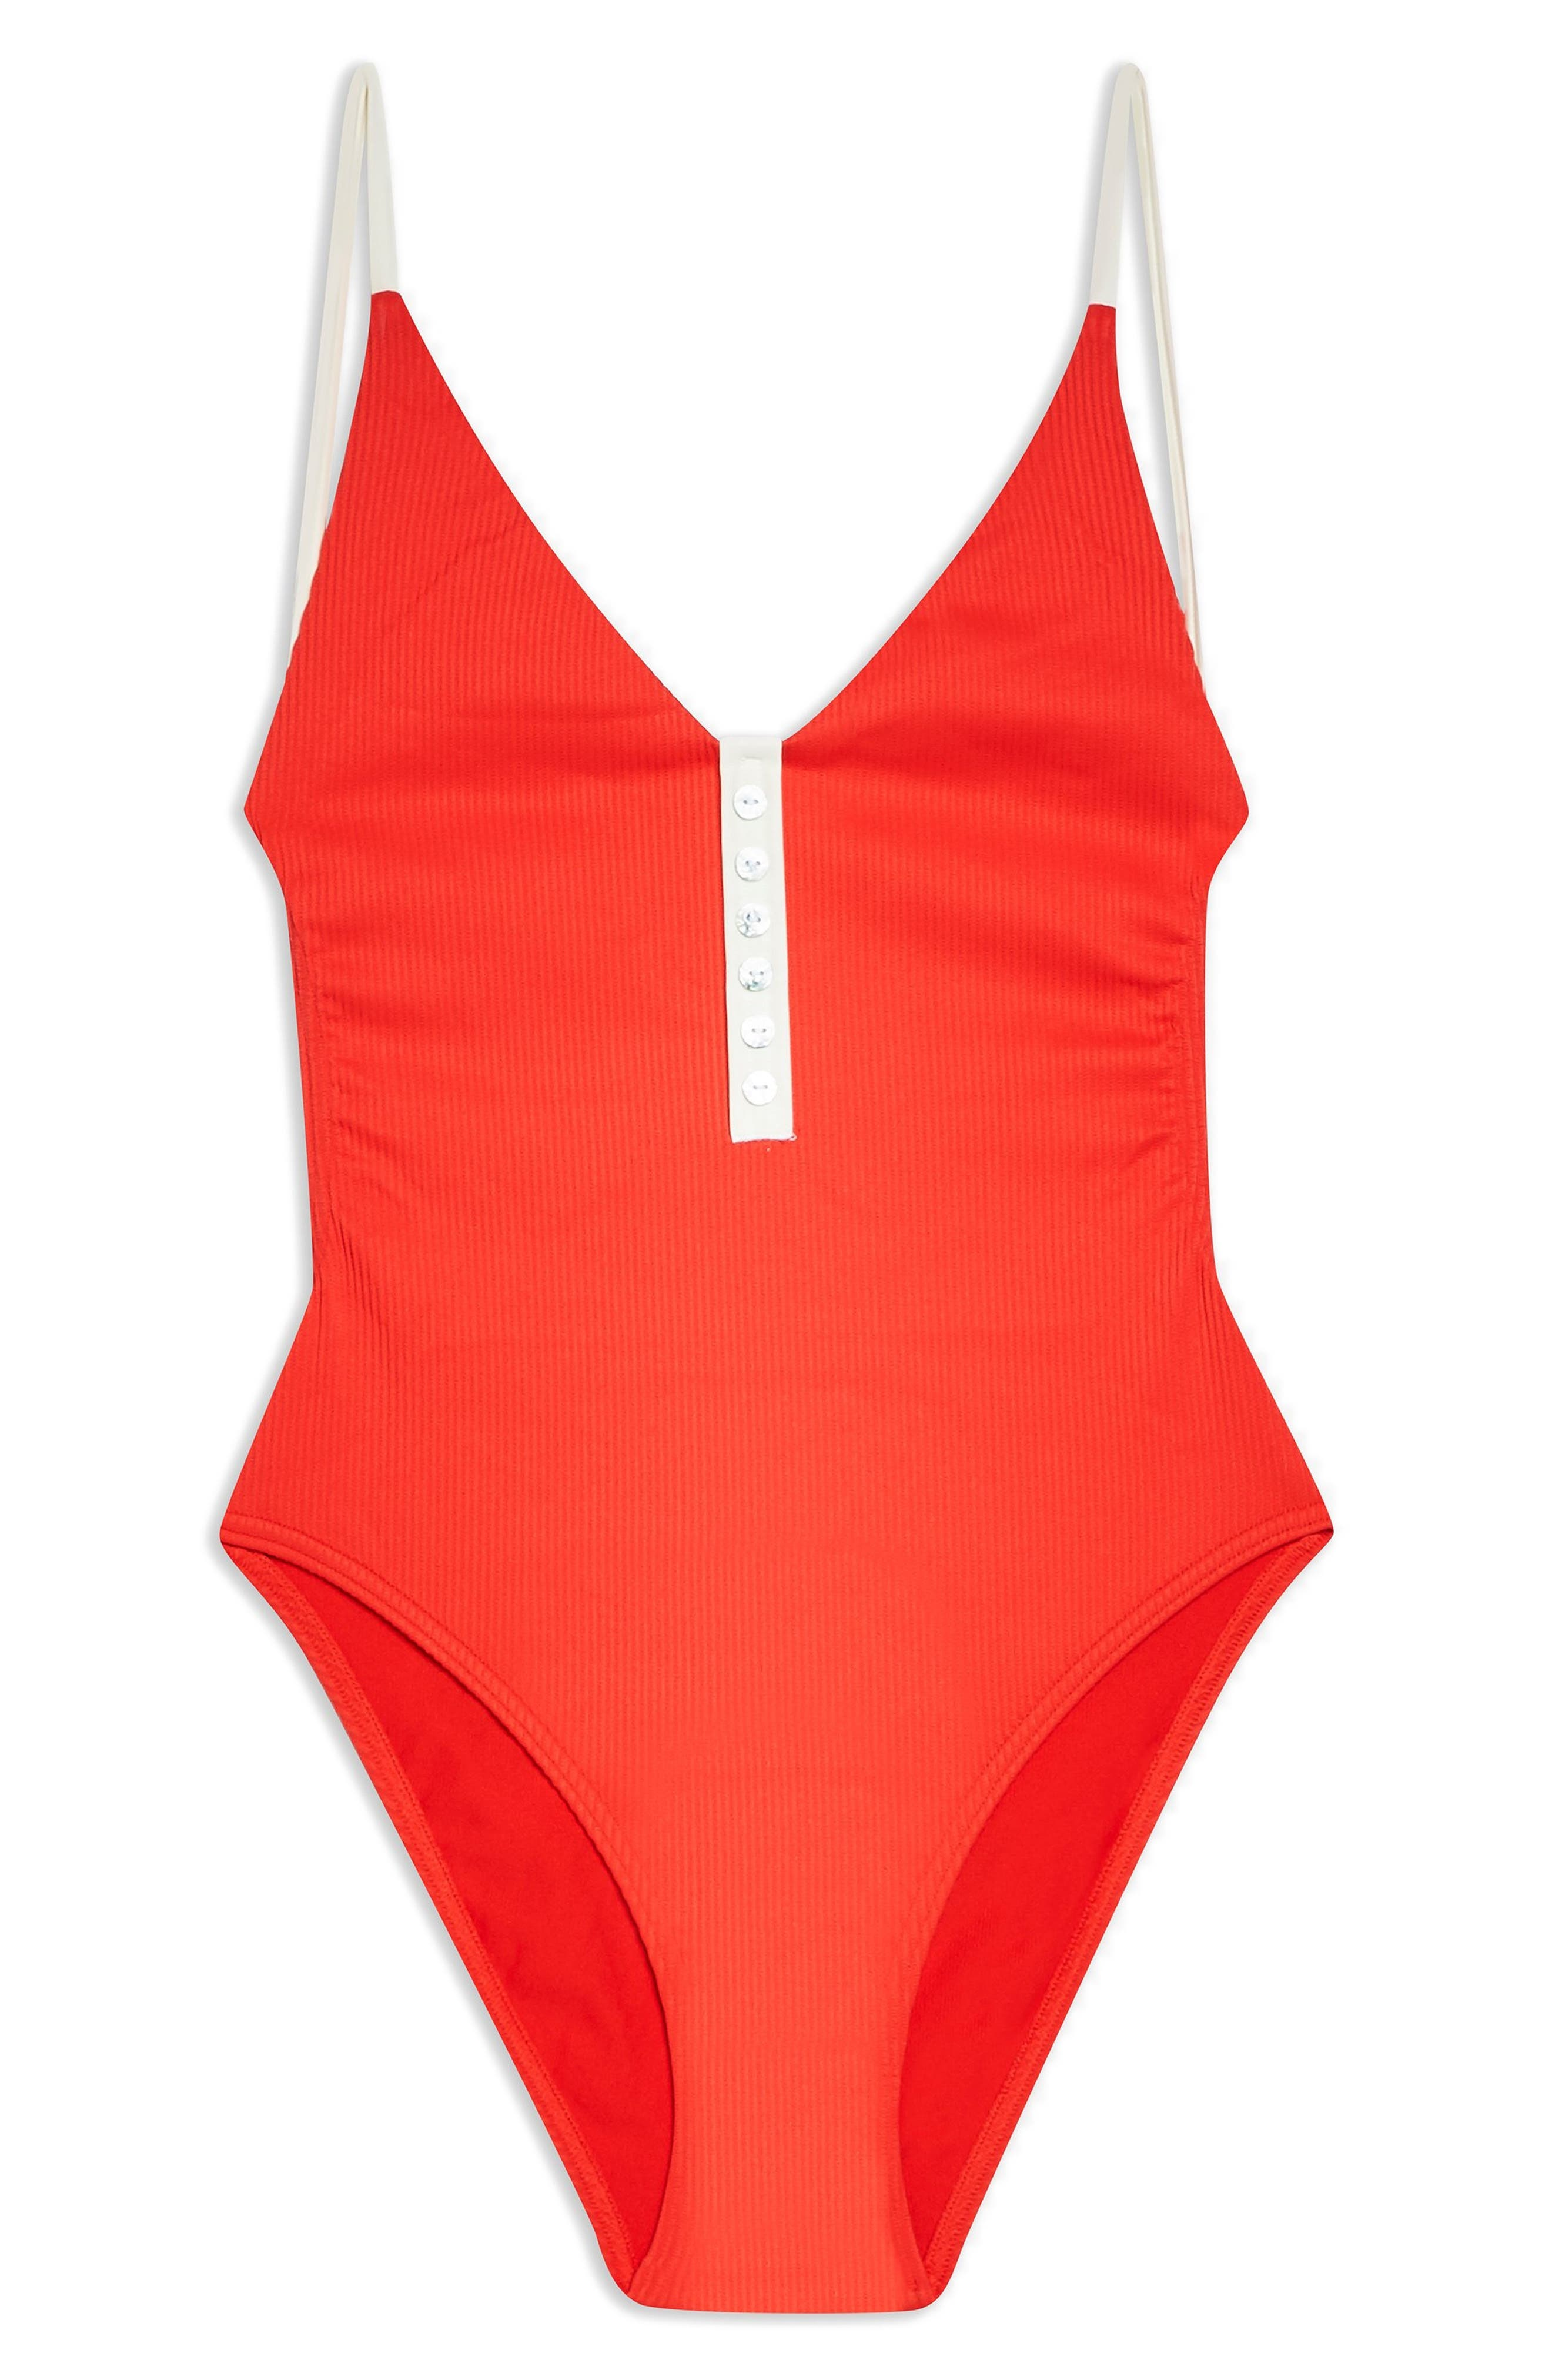 60s Mod Clothing Outfit Ideas Womens Topshop Pamela Button Ribbed One-Piece Swimsuit $52.00 AT vintagedancer.com